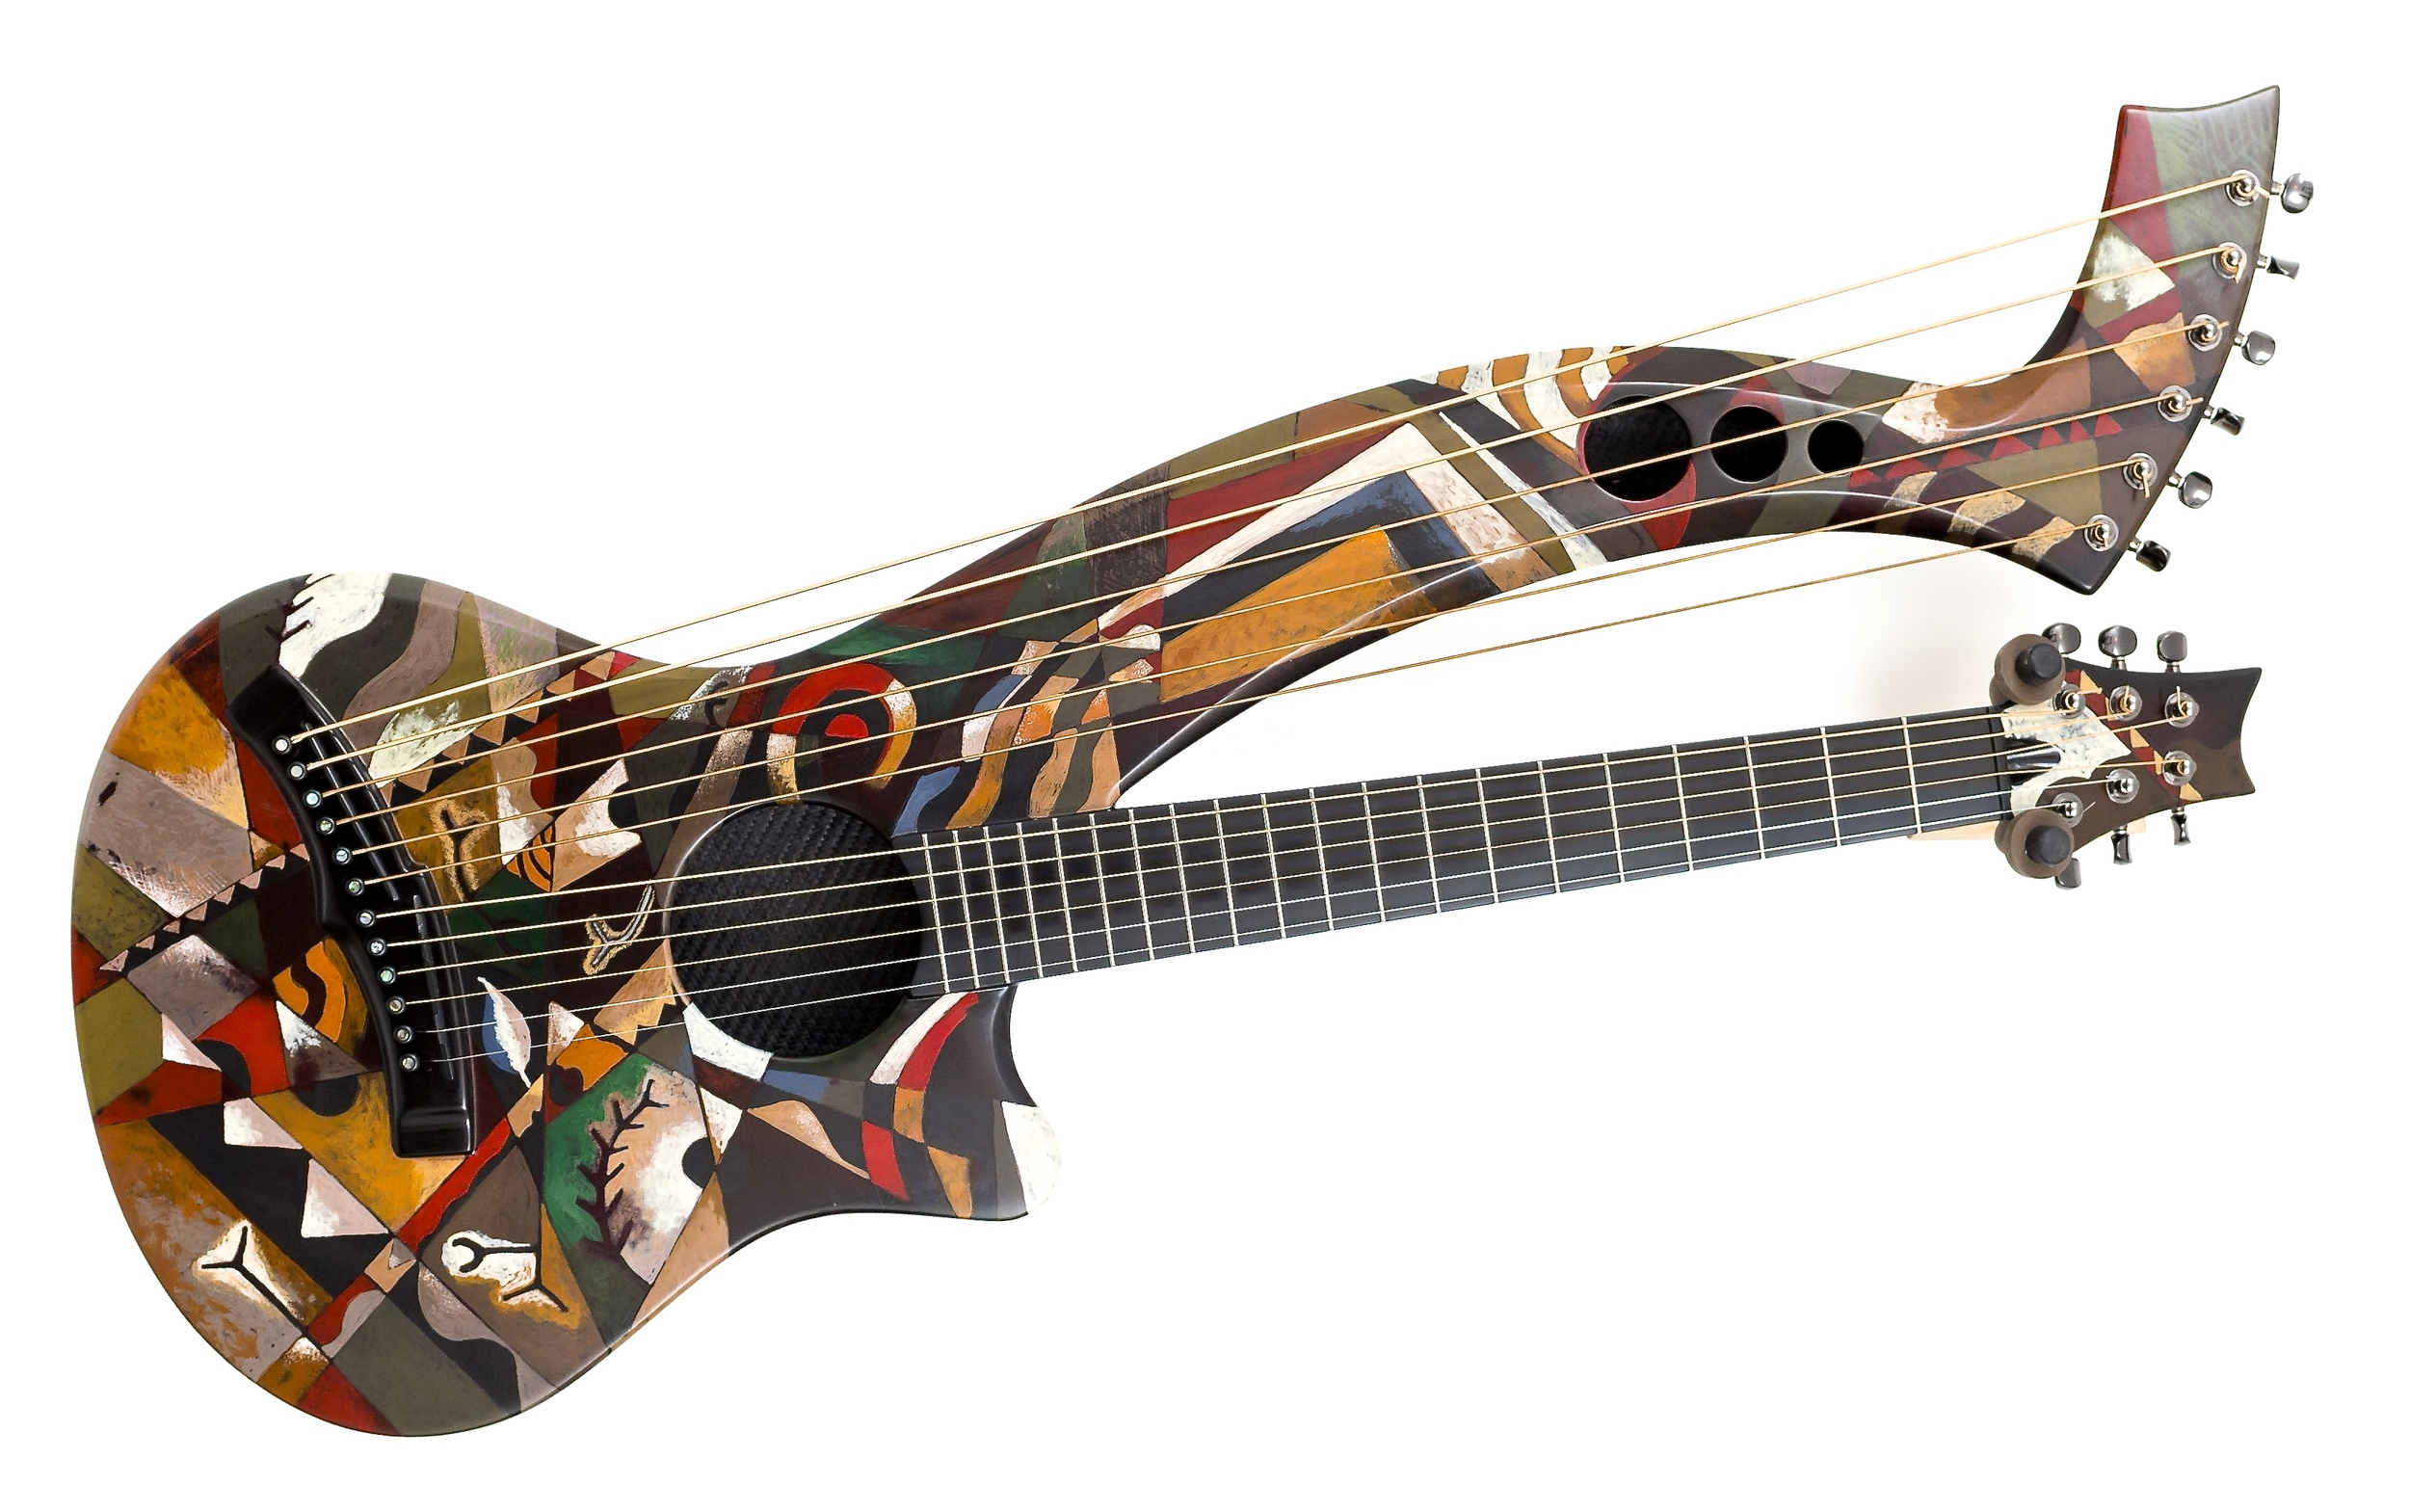 """Synergy harp guitar now on sale, pictured above, the """"Modernist."""" Artists pigment in shellac on carbon-fiber harp guitar by Emerald guitars of Ireland…with electronic.s……contact Emerald guitars of Ireland.  #emeraldguitars #harpguitar #artoftheacousticfinish"""